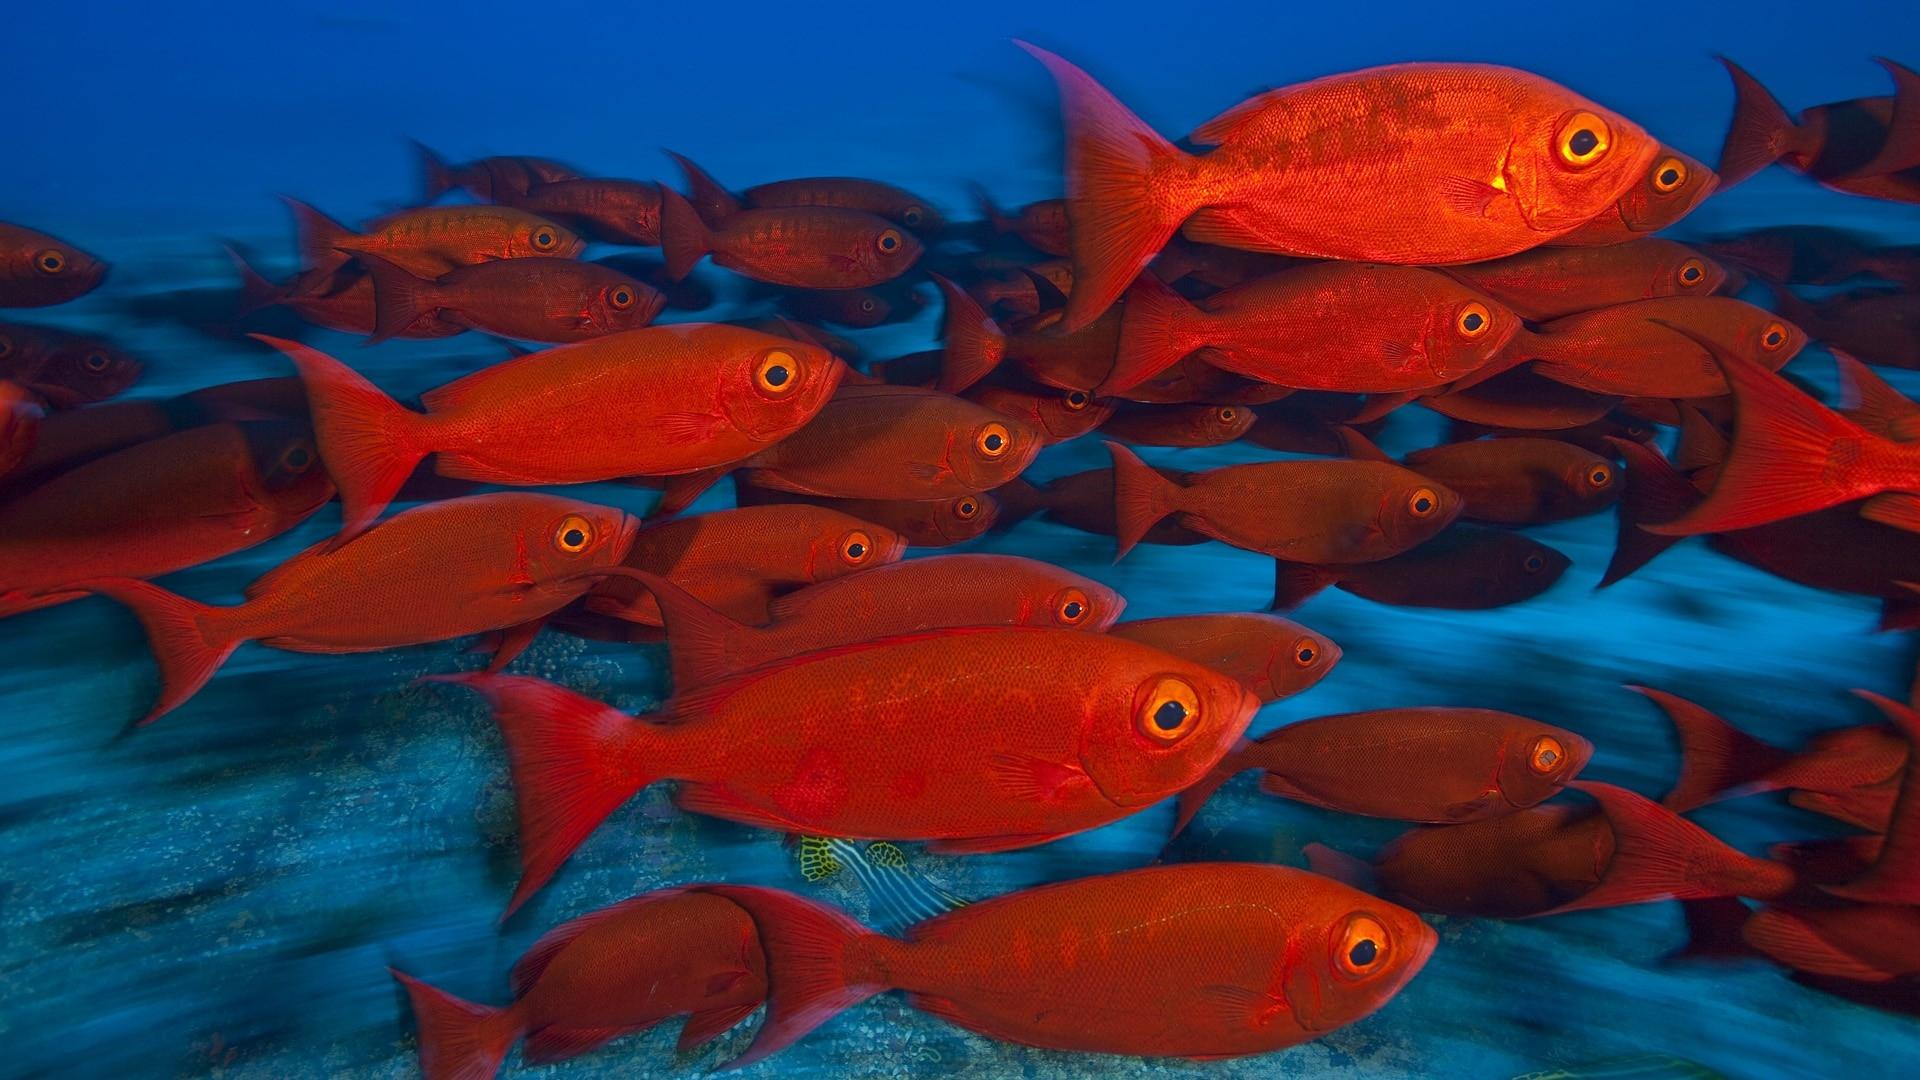 animals_fishes_tropical_red_color_eyes_underwater_sea_ocean_water_hd_widescreen